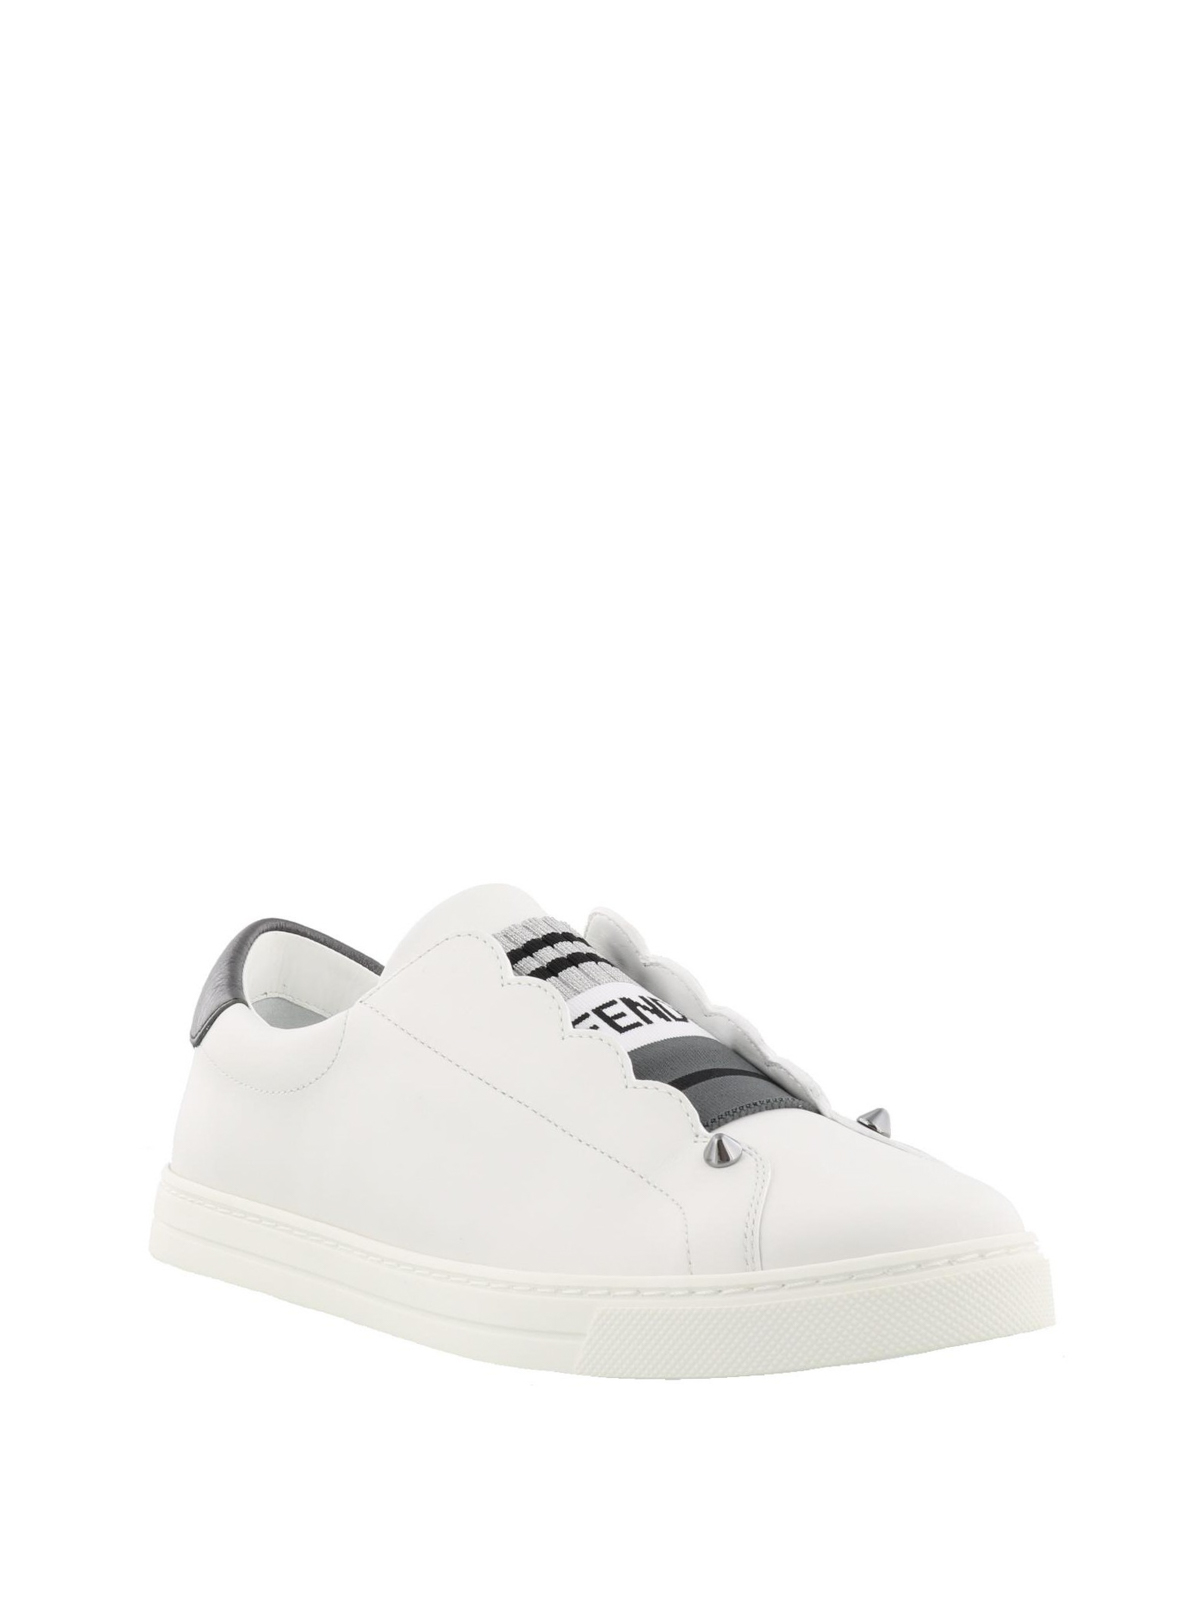 Fendi - Leather slip-on sneakers with